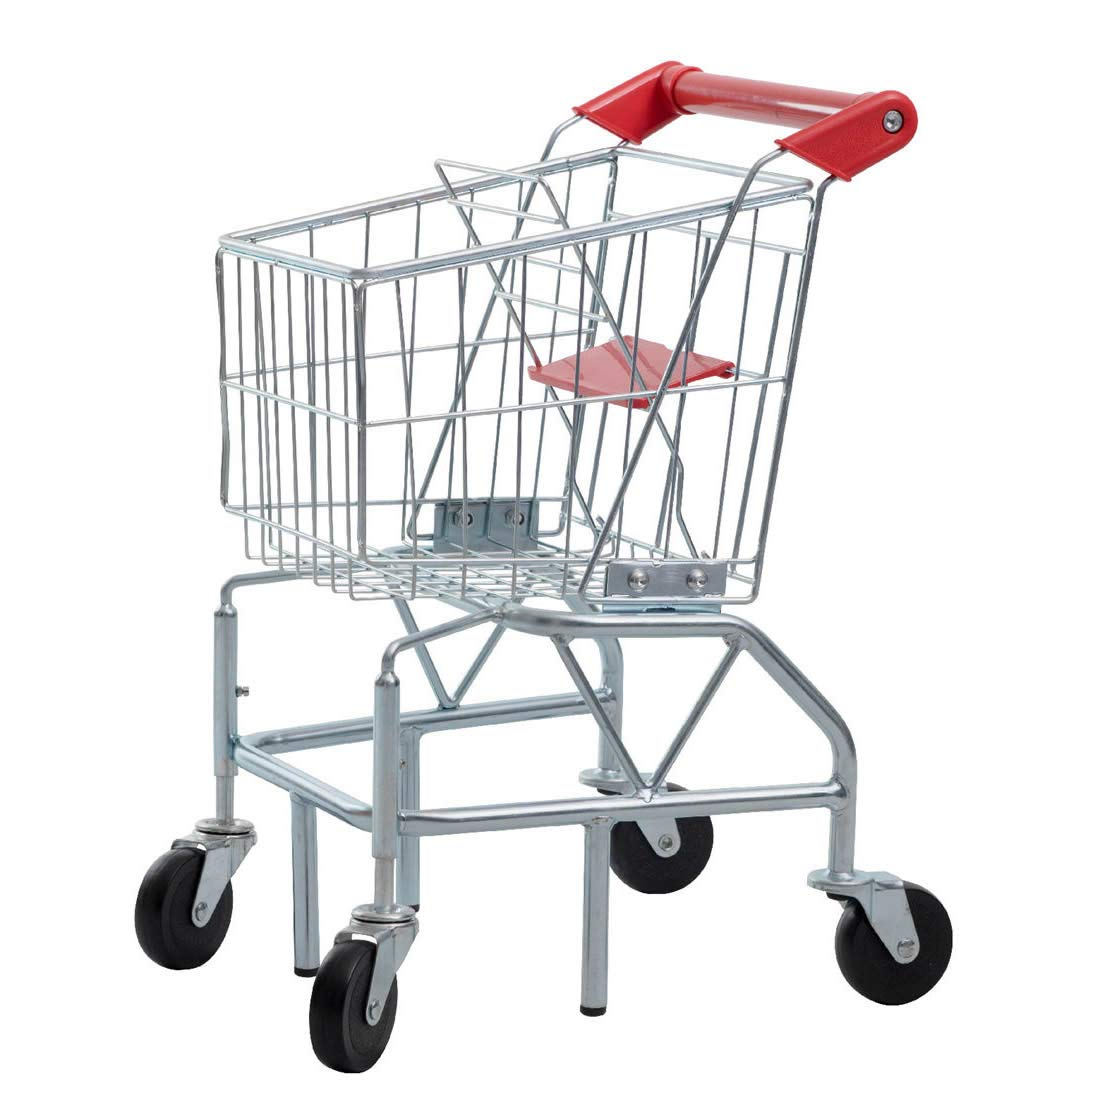 556238494215 Amazon.com: Selva Mini Shopping Cart Realistic Kids Size Play Toy ...